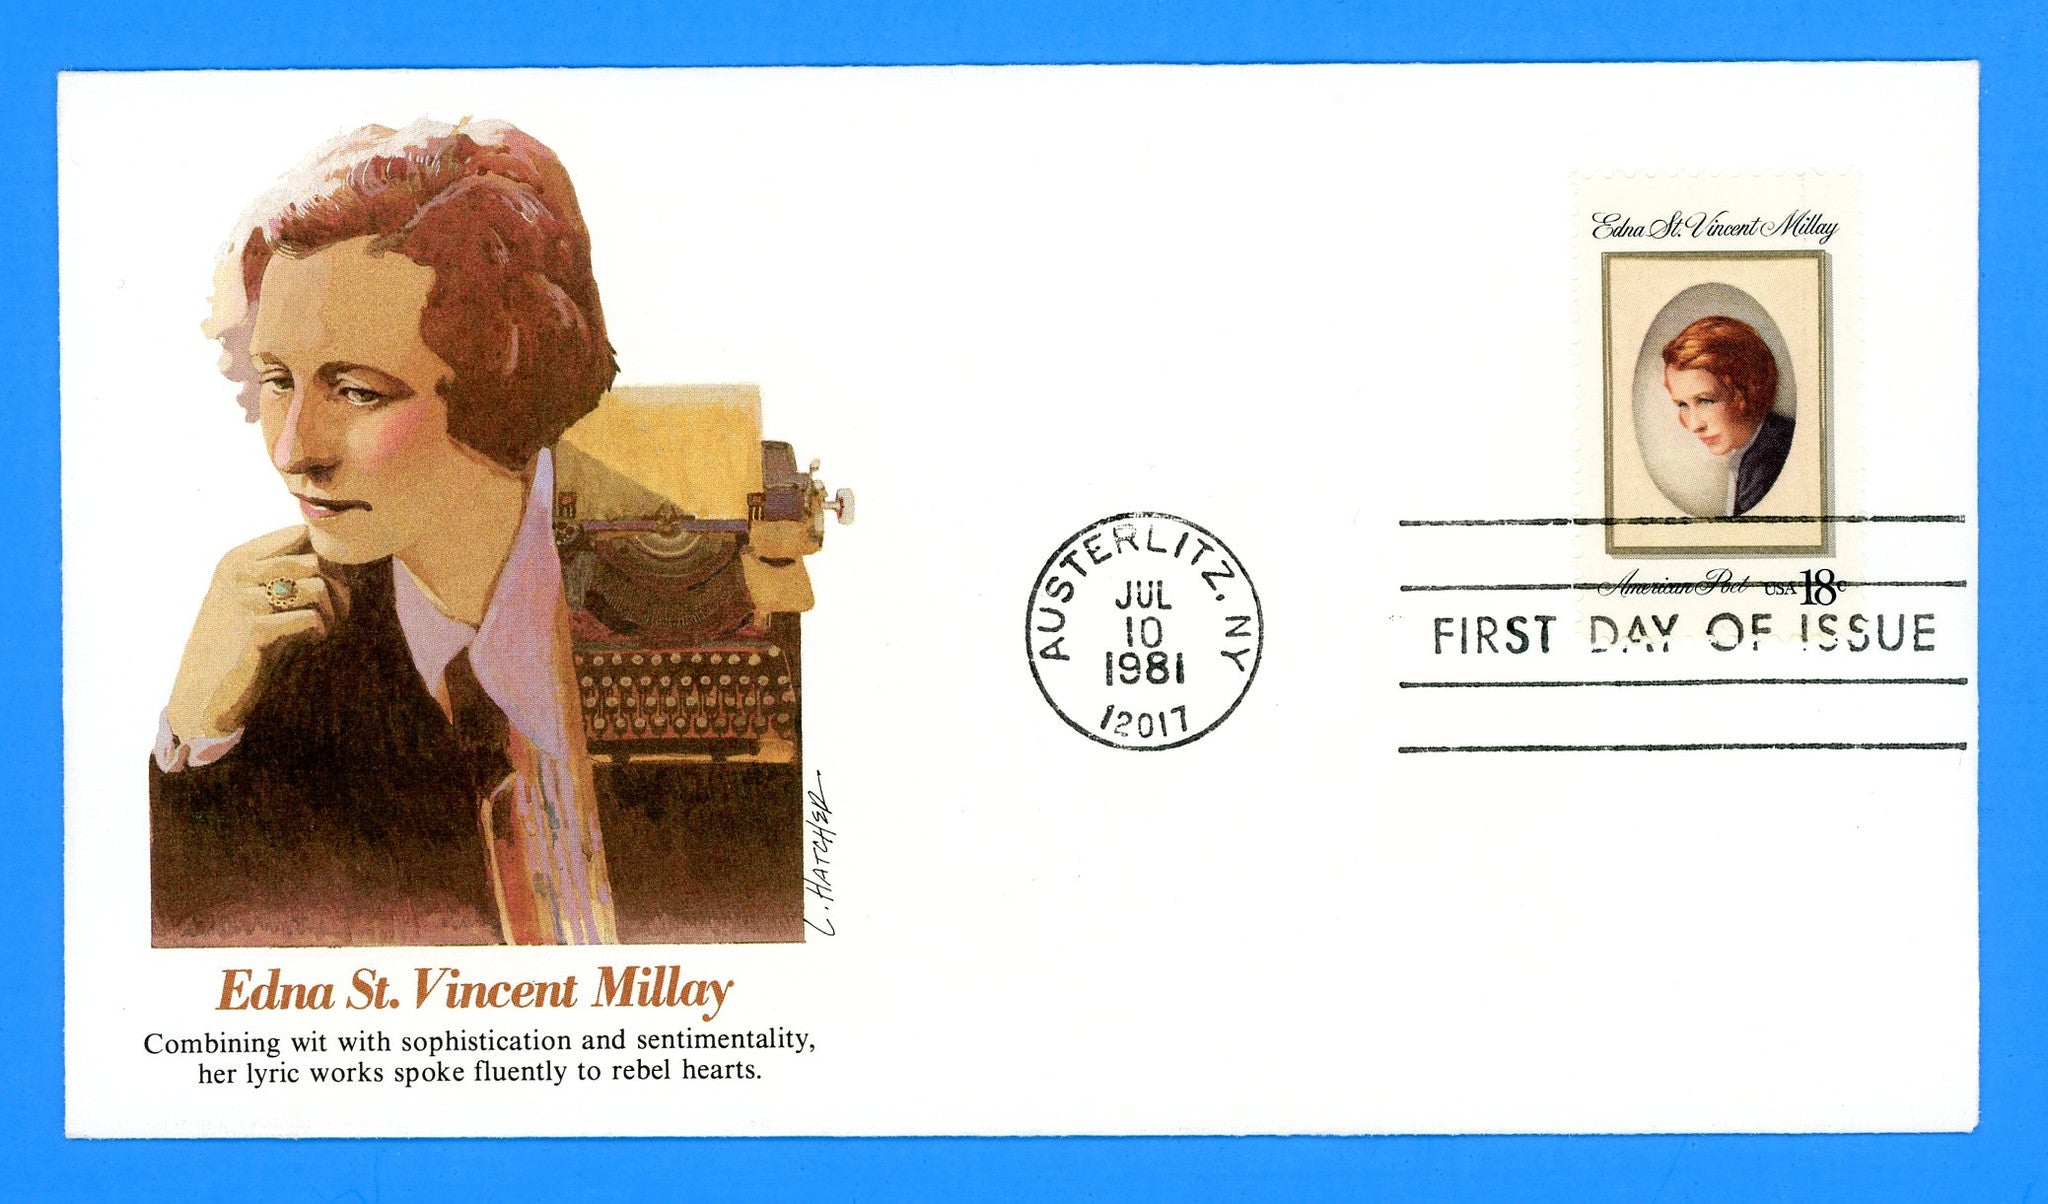 Edna St. Vincent Millay, Poet First Day Cover by Fleetwood